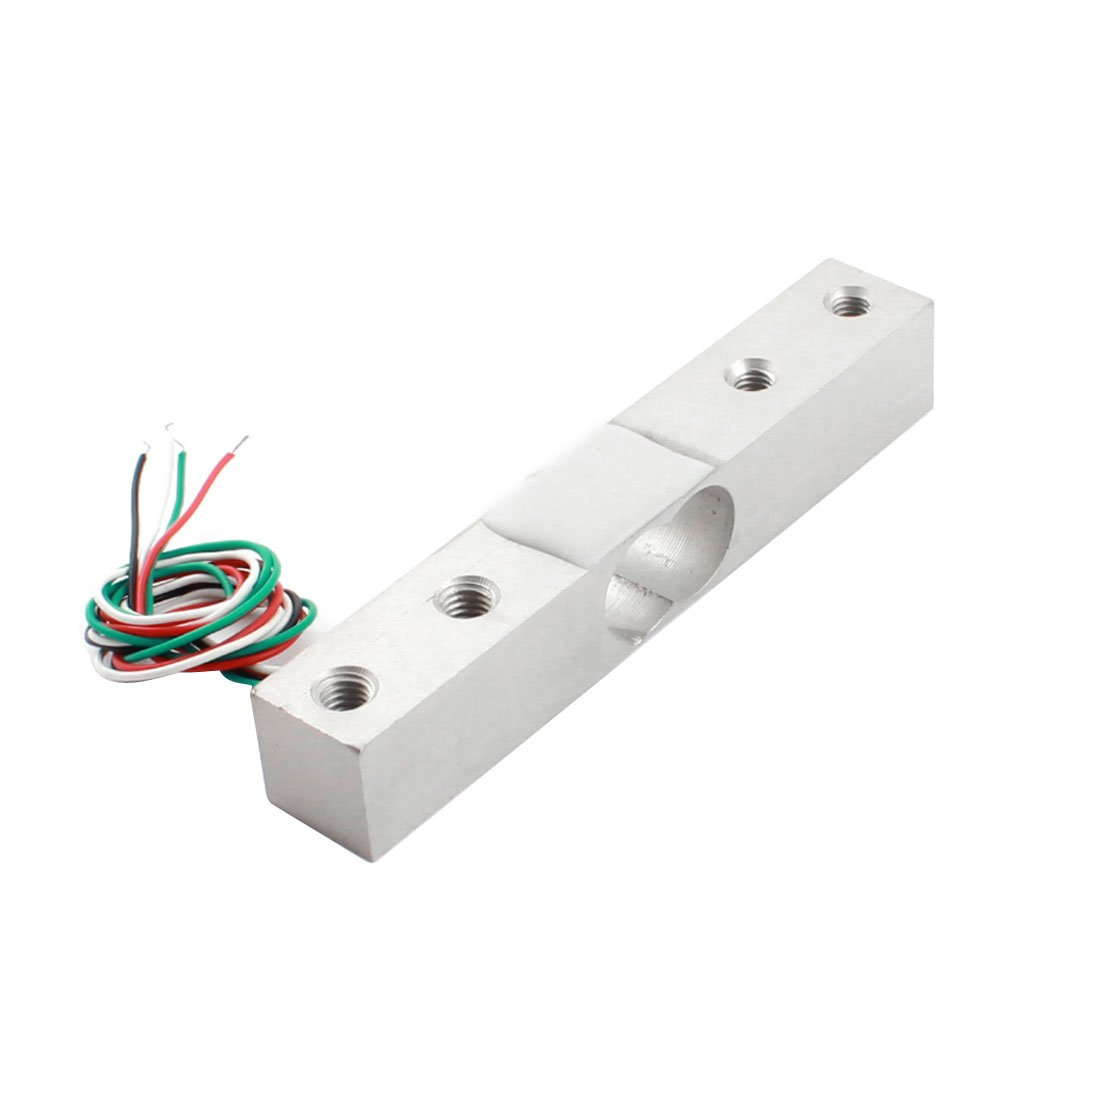 Aexit 3Kg 4-Wired Aluminium Alloy Load Cell Weighting Pressure Sensor